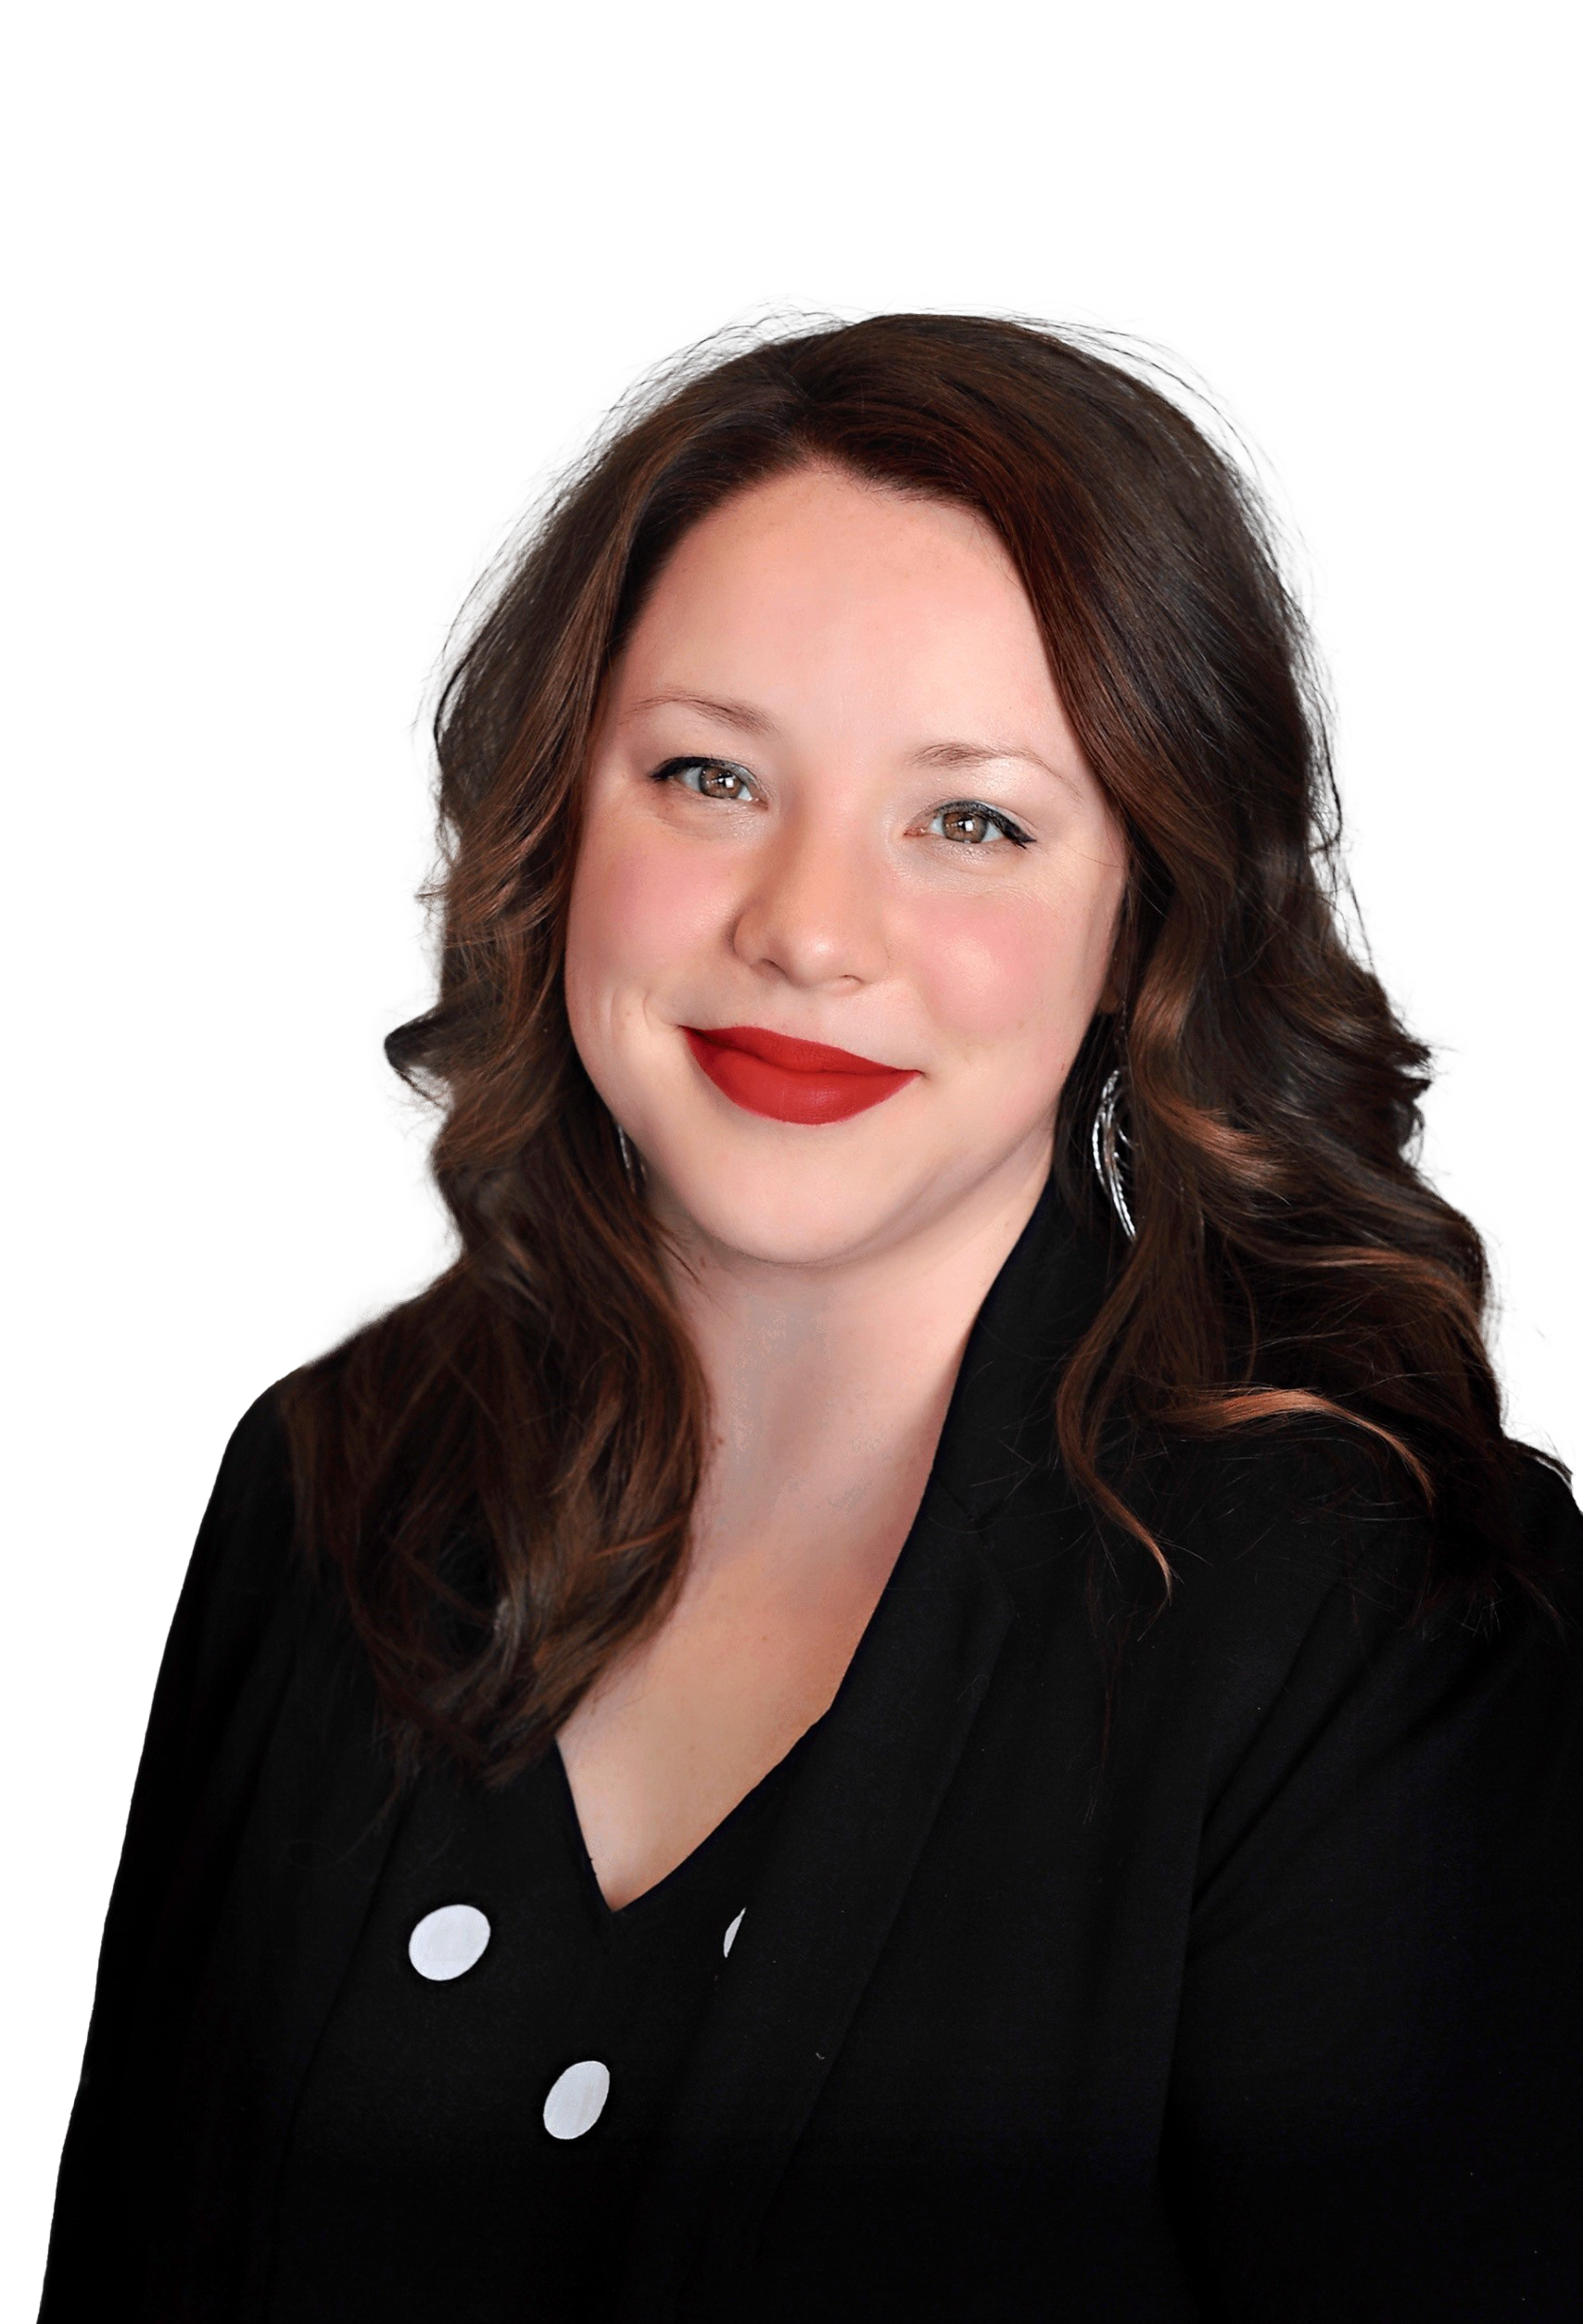 Pipes Insurance Service Team: Olivia Day, Personal Lines Agent and Marketing Director